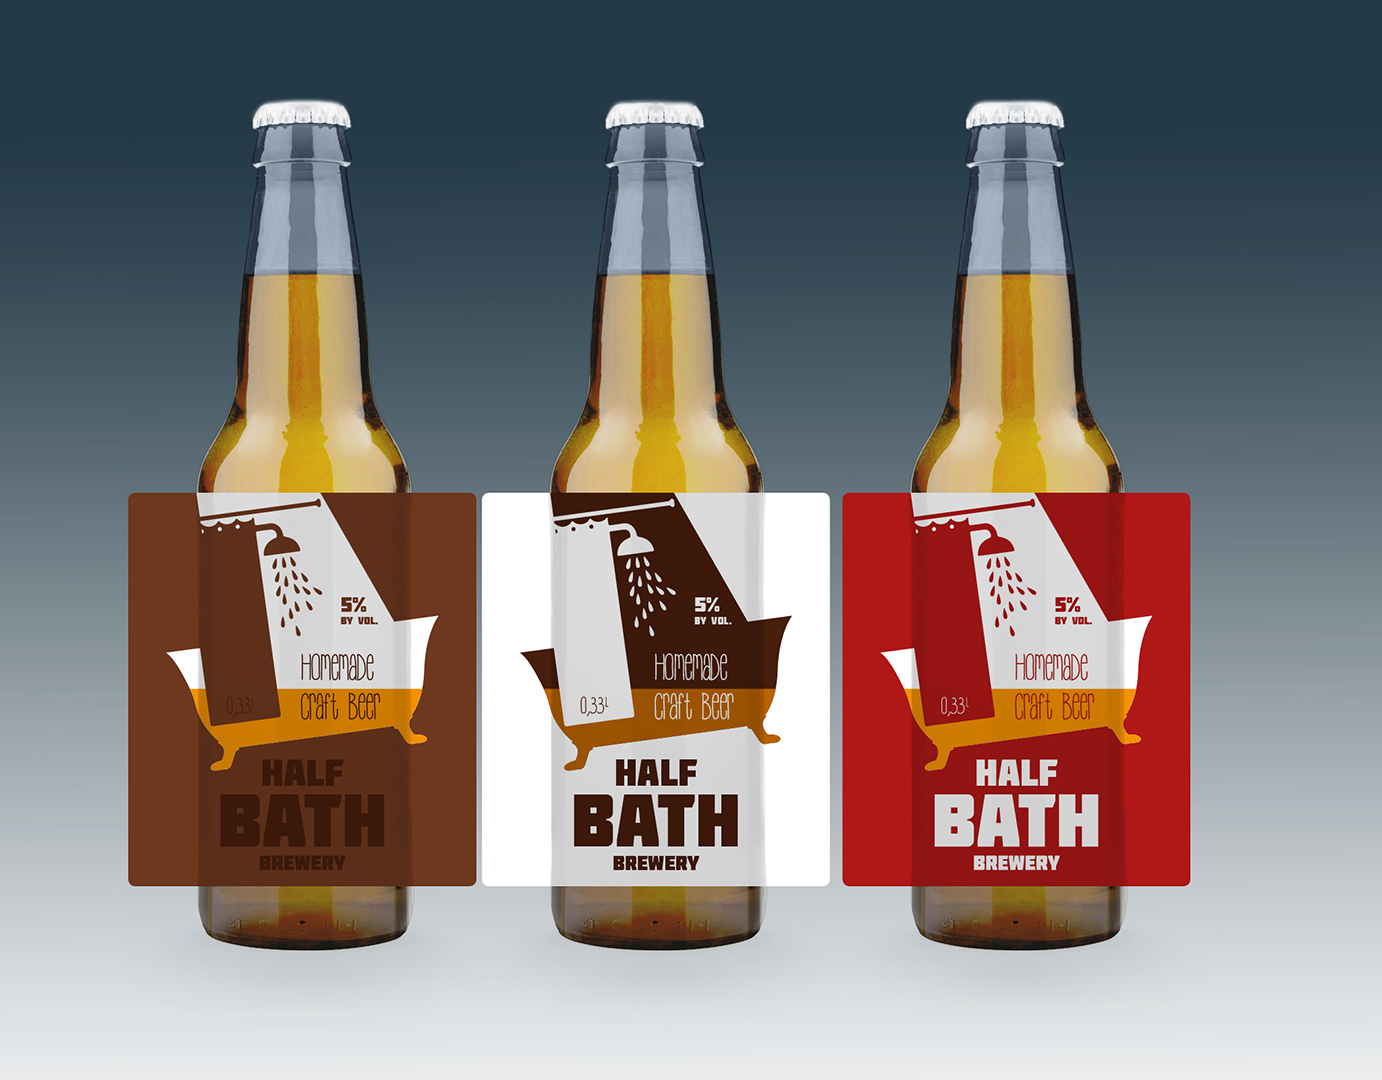 craft beer bath bakelis branding graphic amp web design packaging 1394